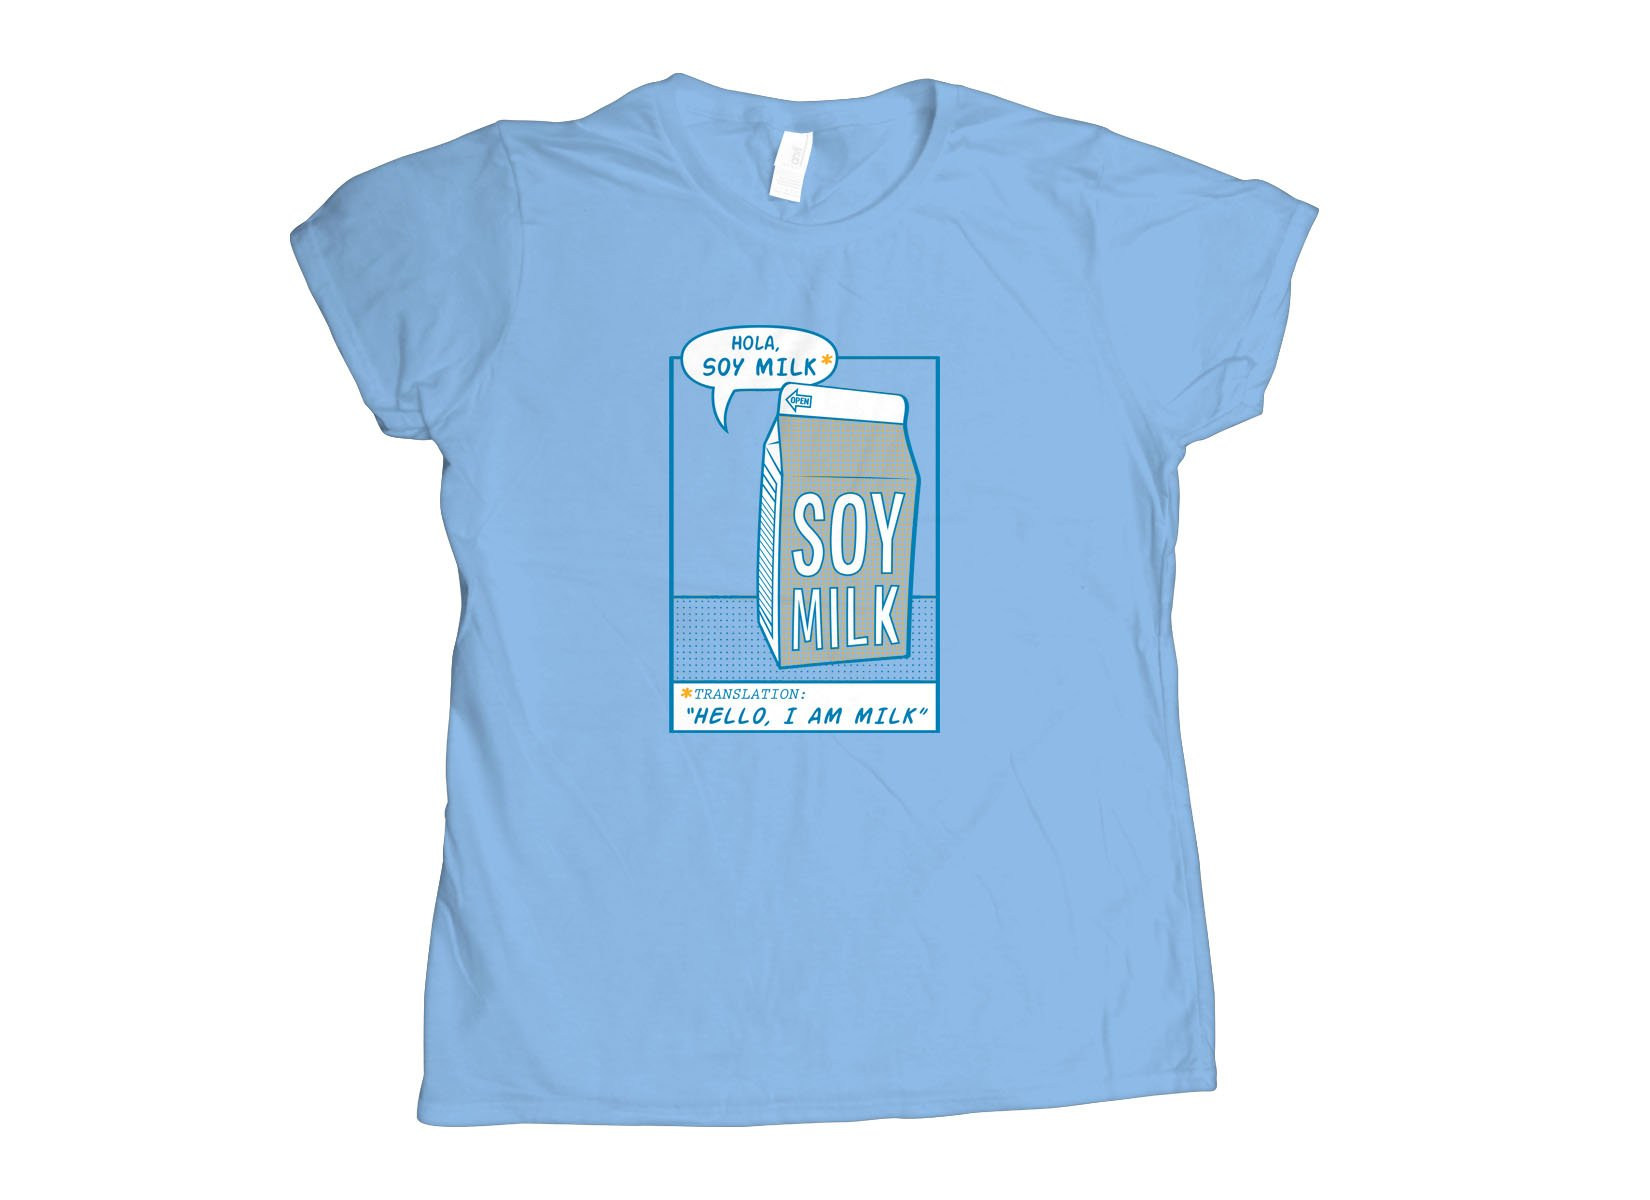 Hola, Soy Milk on Womens T-Shirt